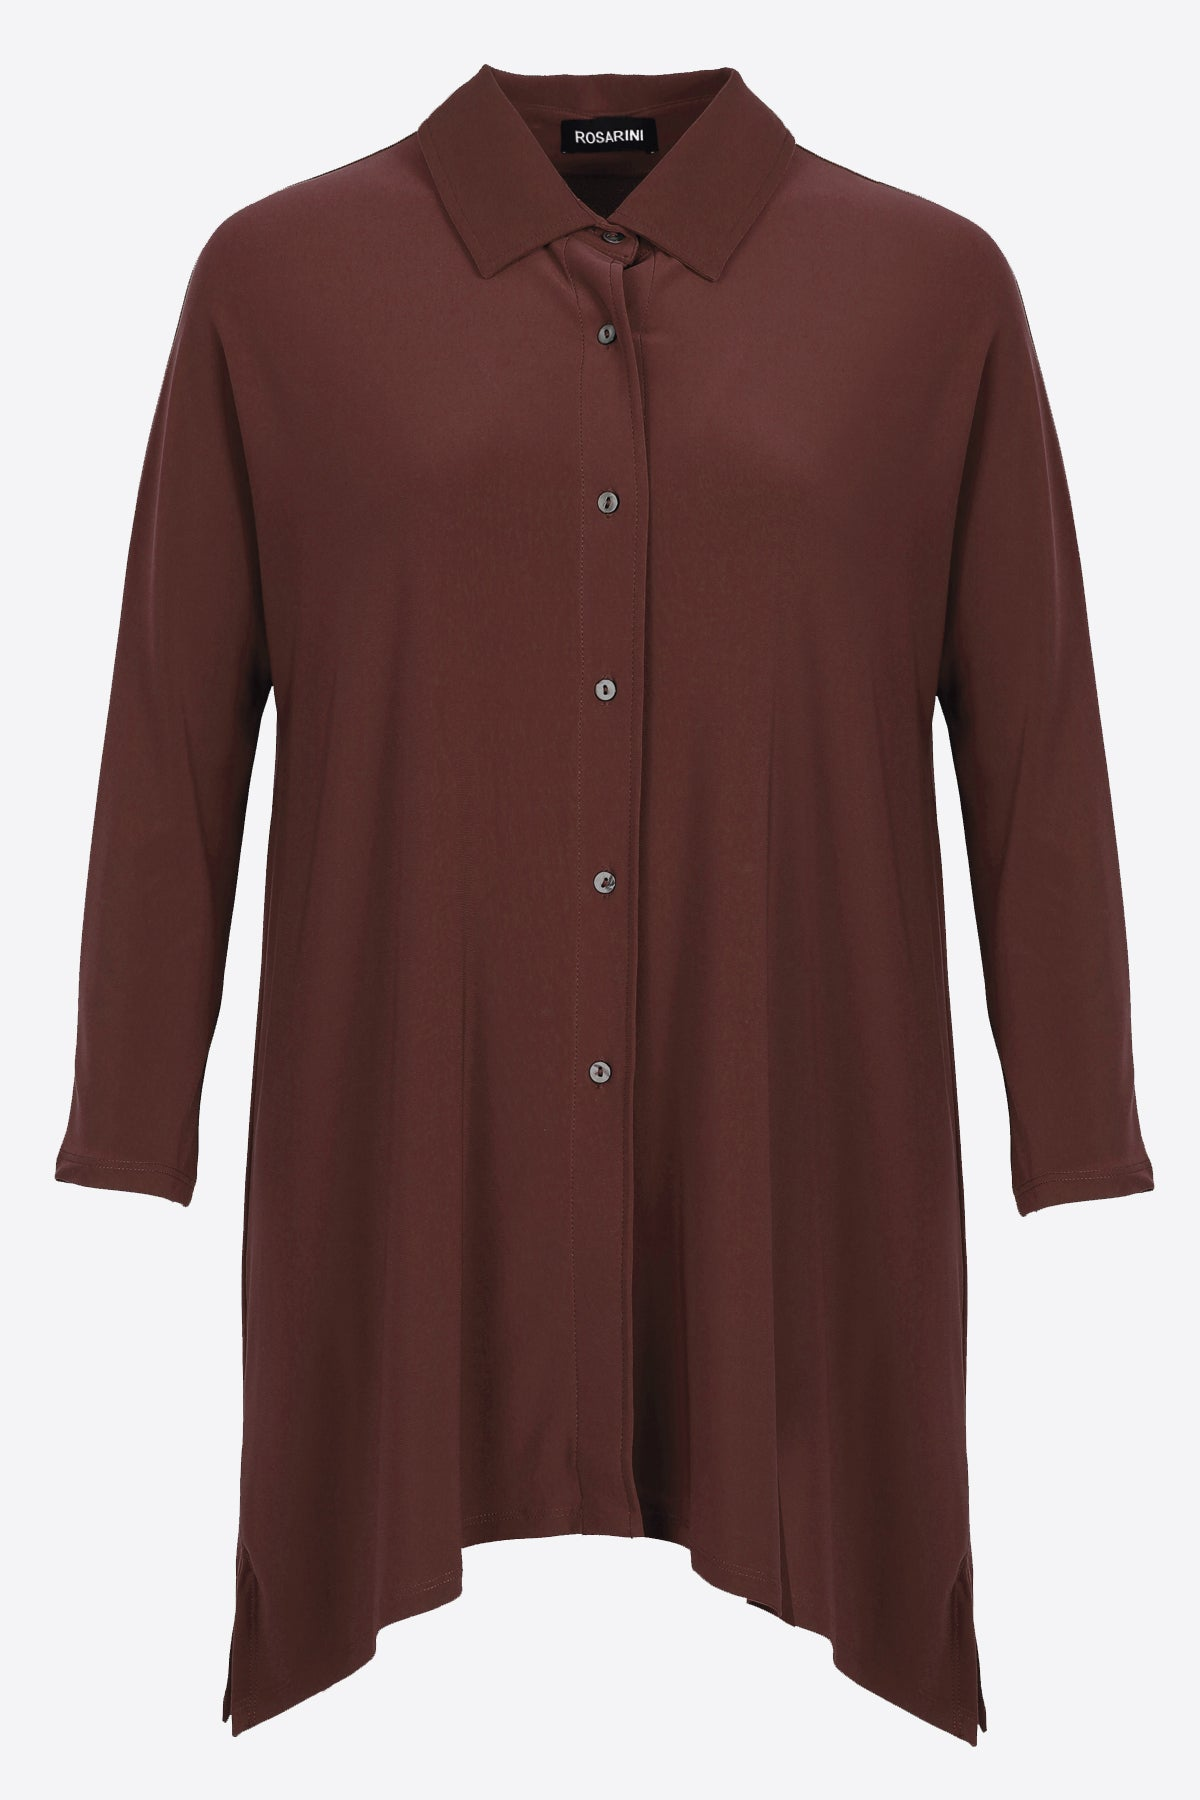 Women's Chestnut Button Shirt with Curved Hem 3/4 Sleeves Travel Shirt Rosarini